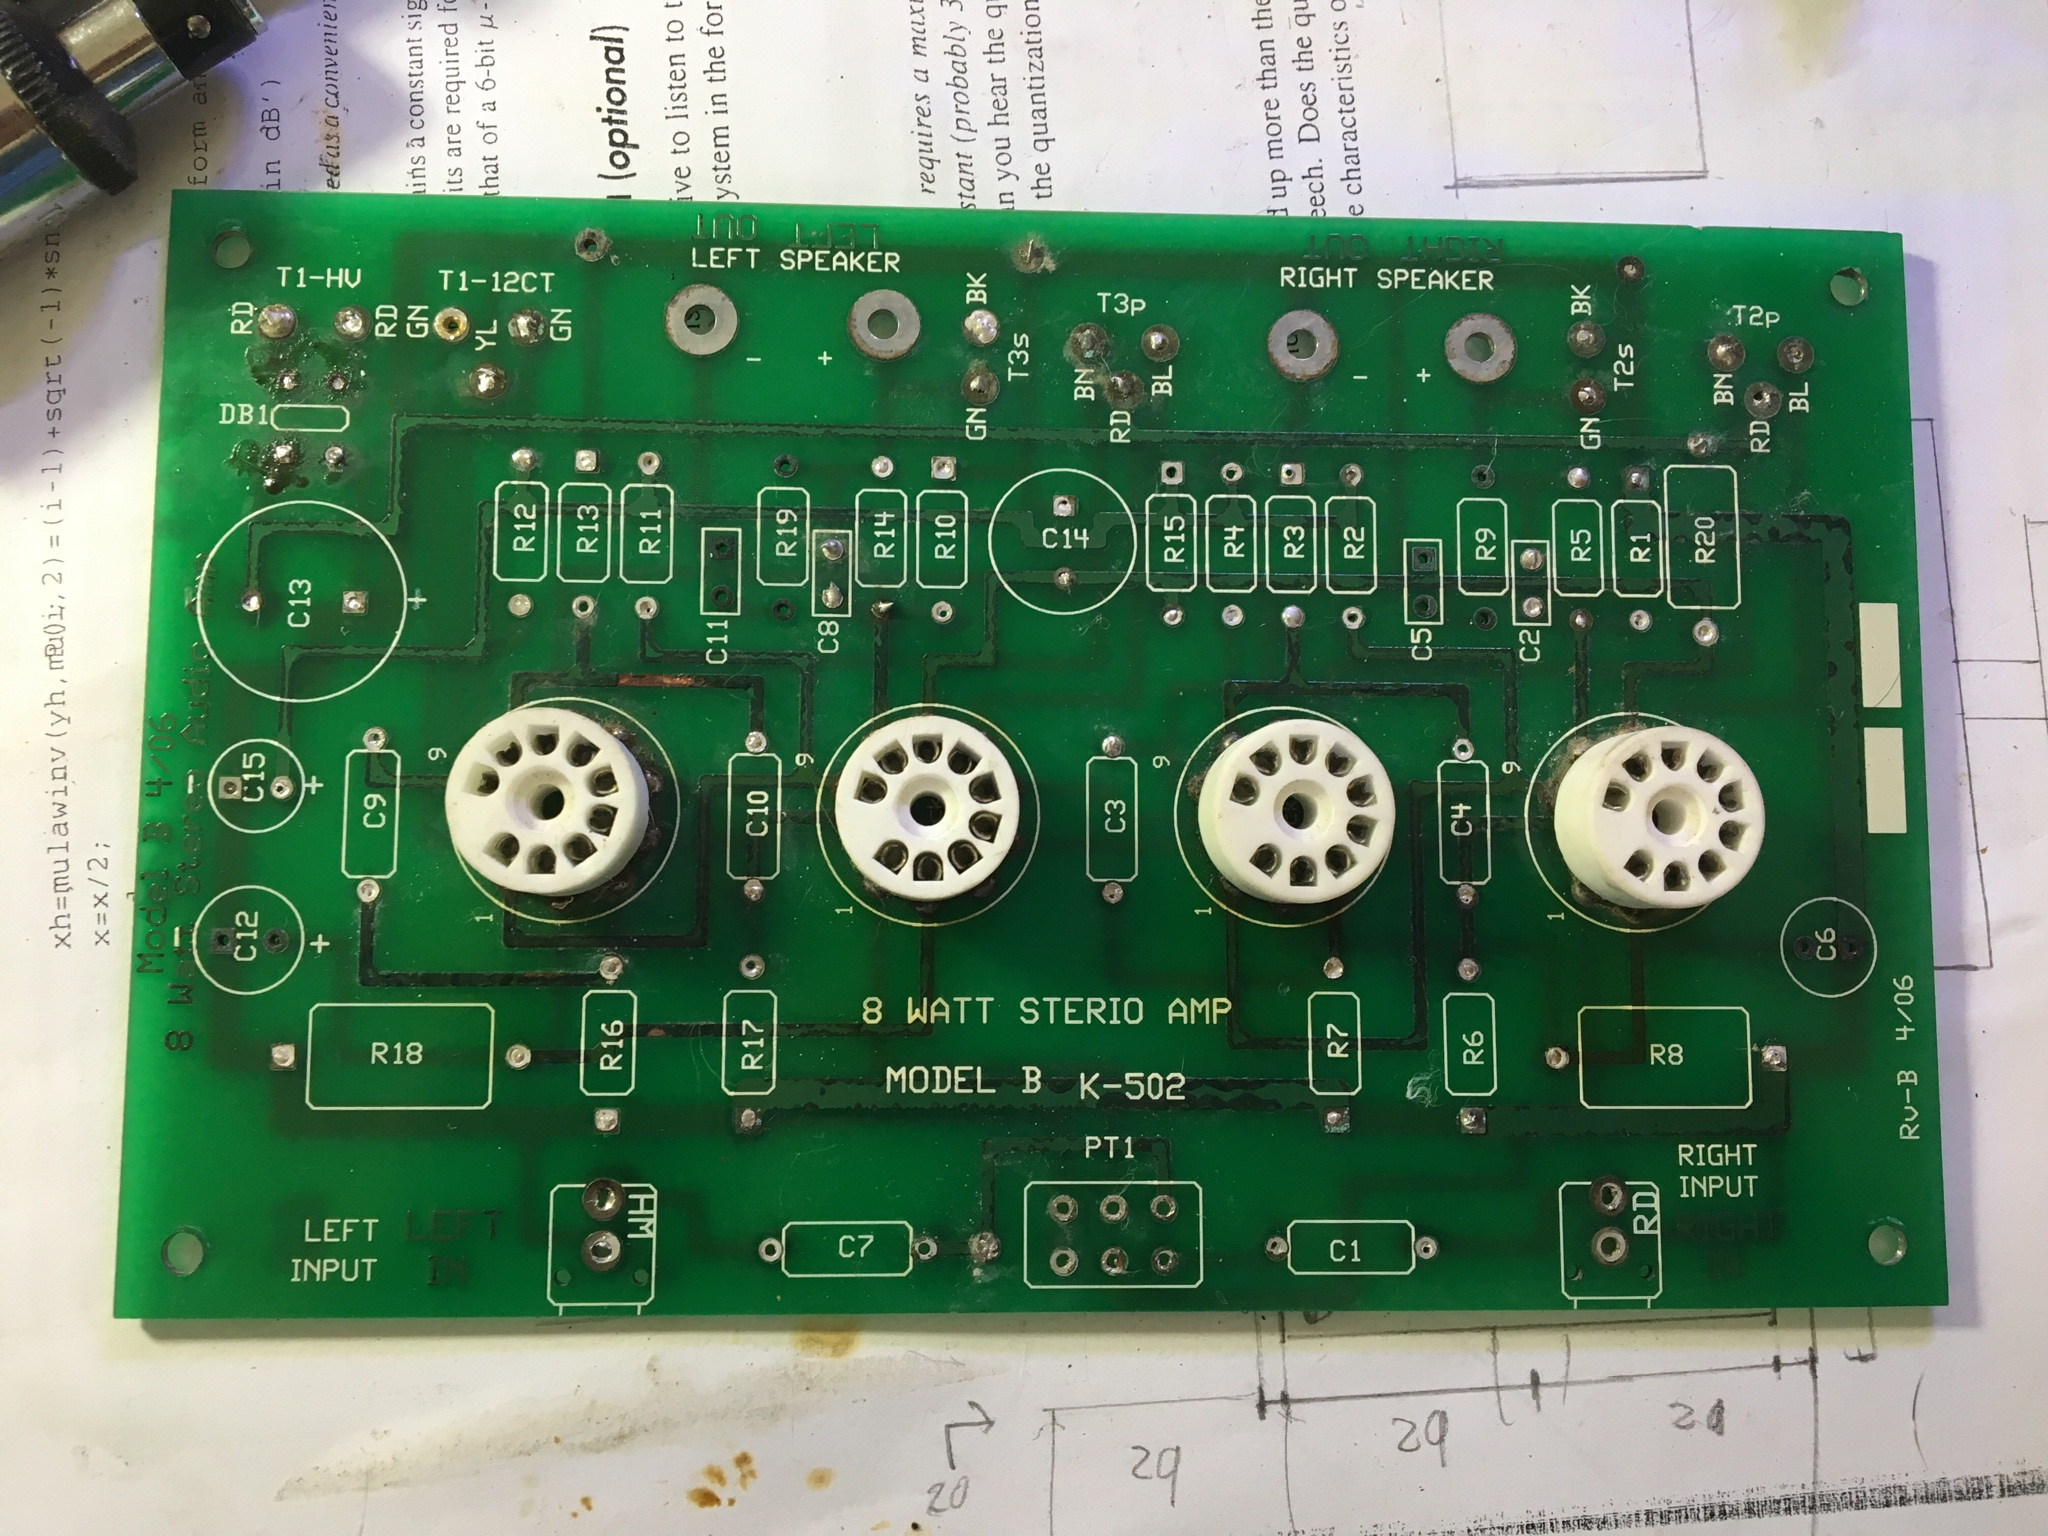 Repairing Corroded Pcb Page 2 Aerosol Contact And Circuit Board Cleaner Just Wiped The With Alcohol Its Looking Amazing Only Problem Is That Solder Mask Indeed Scraping Off Copper Traces